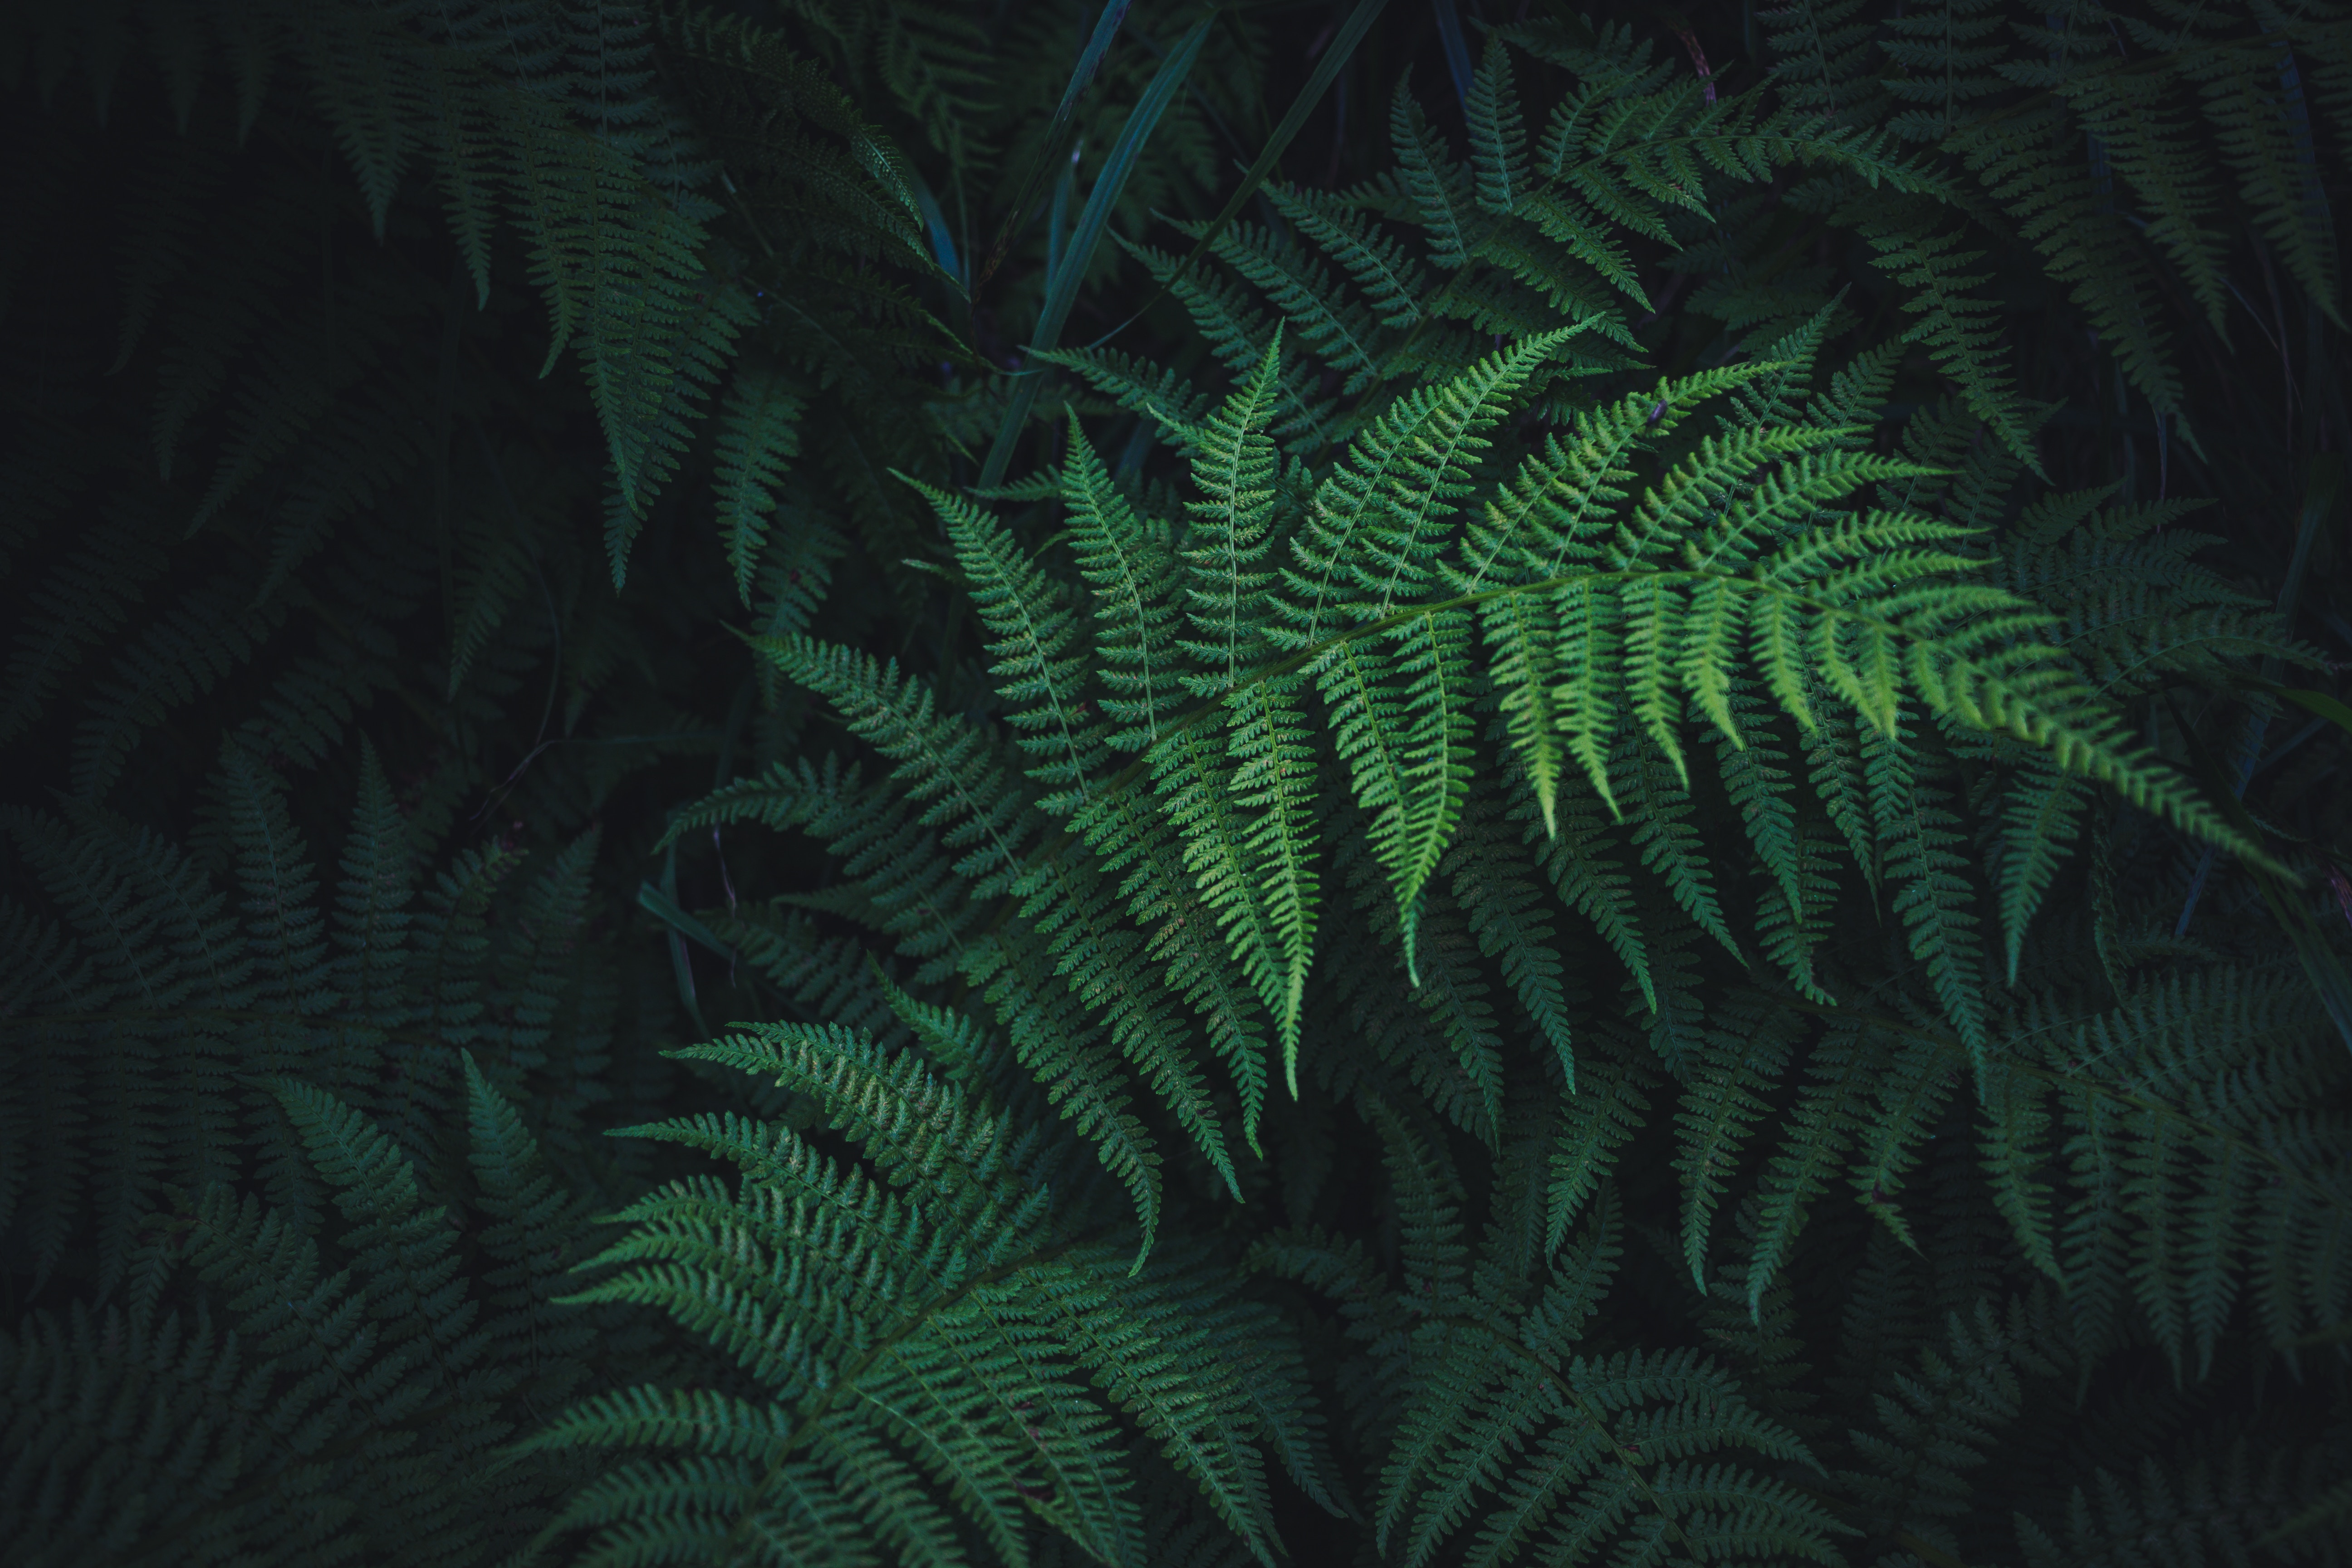 140246 download wallpaper Leaves, Nature, Plant, Fern, Carved screensavers and pictures for free